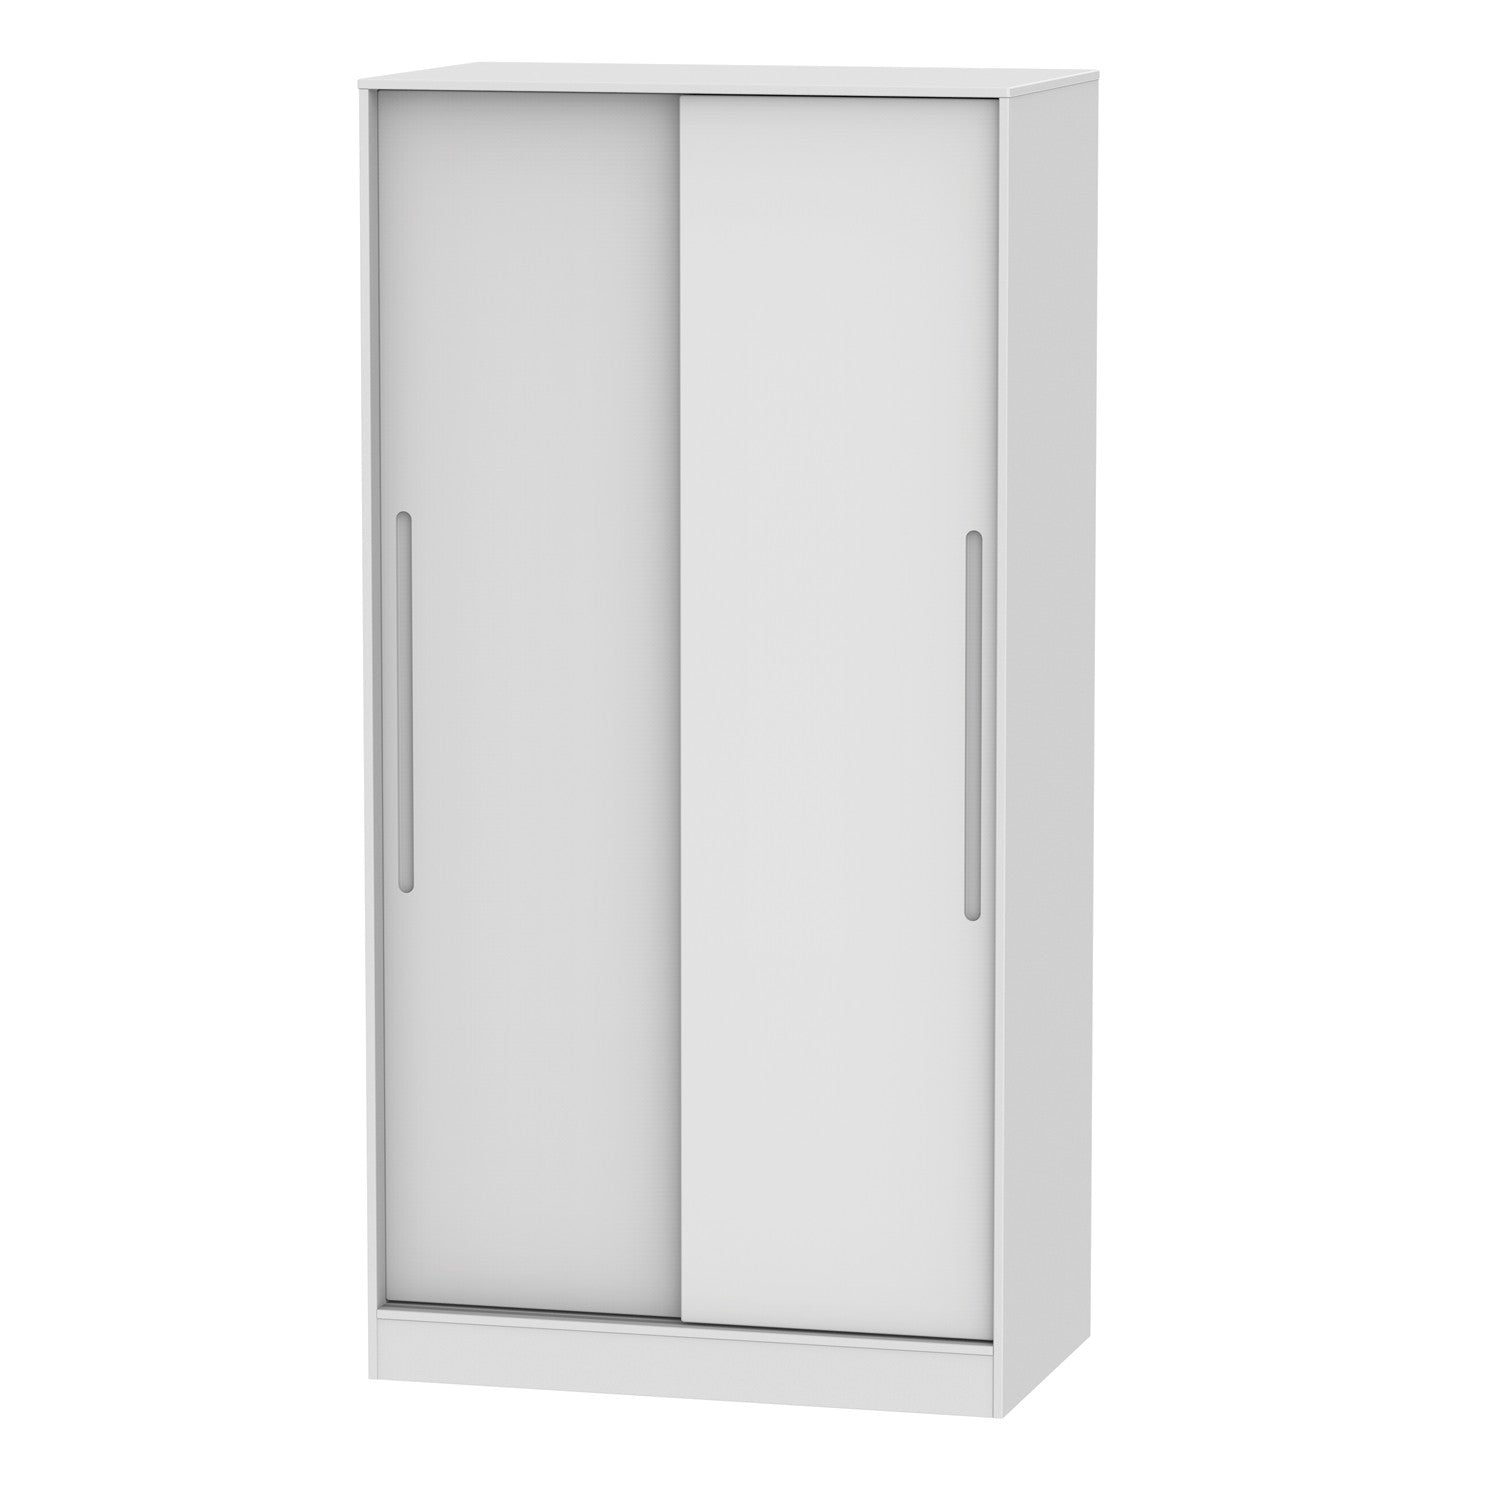 Chelsea Gloss - Sliding Wardrobe